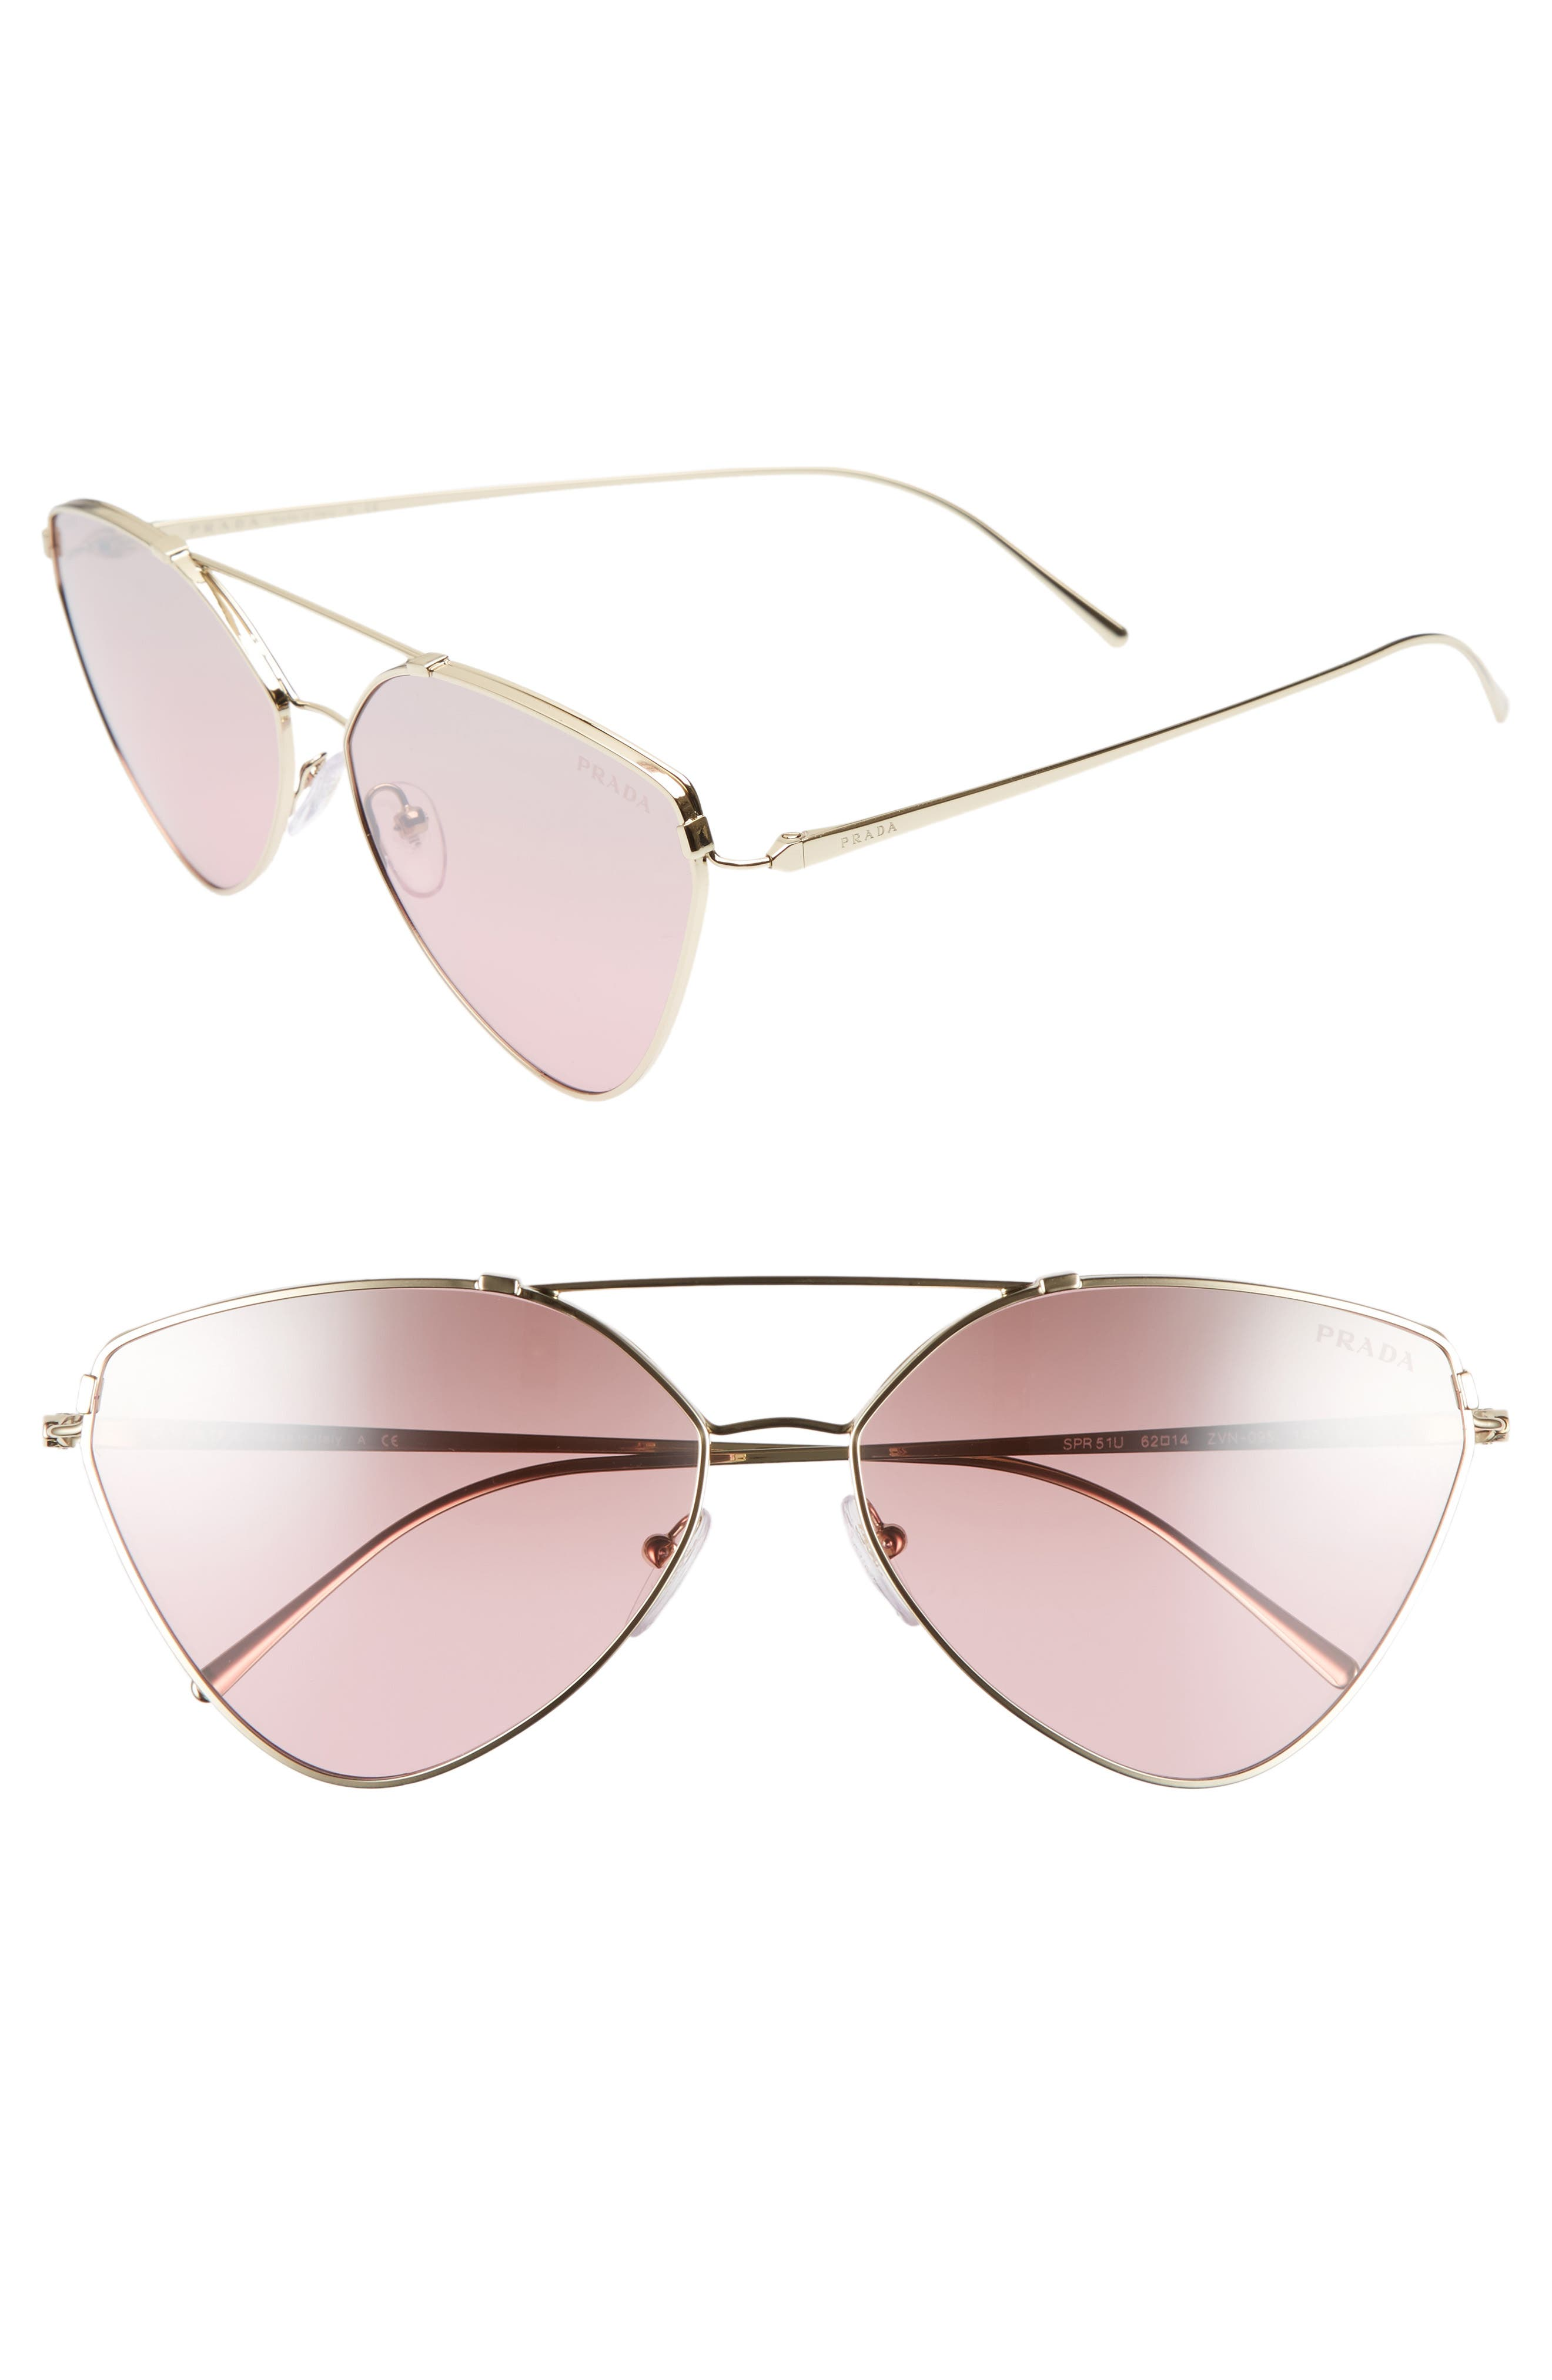 62mm Gradient Aviator Sunglasses,                             Main thumbnail 1, color,                             PALE GOLD